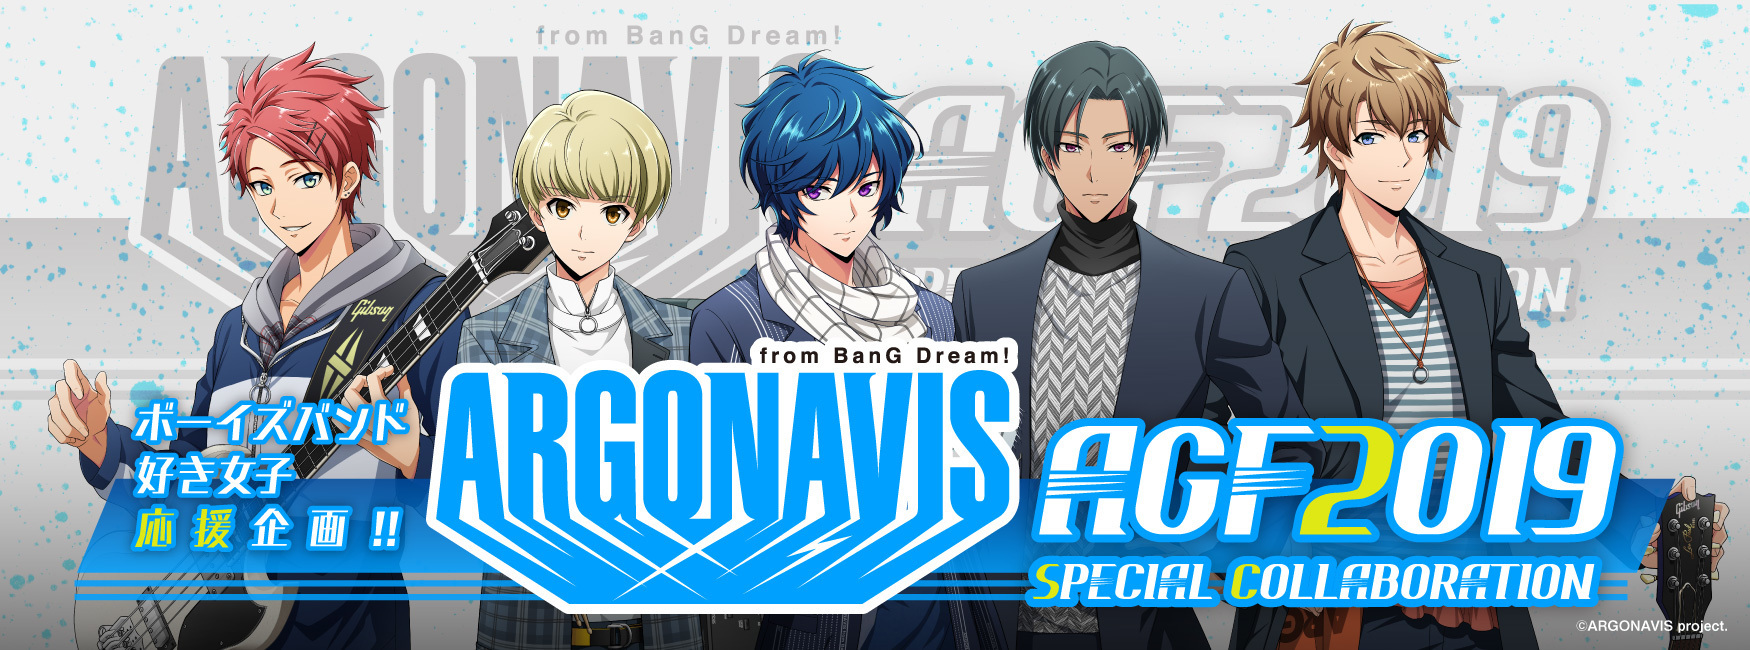 ARGONAVIS from BanG Dream! × AGF2019 11月5日更新延期